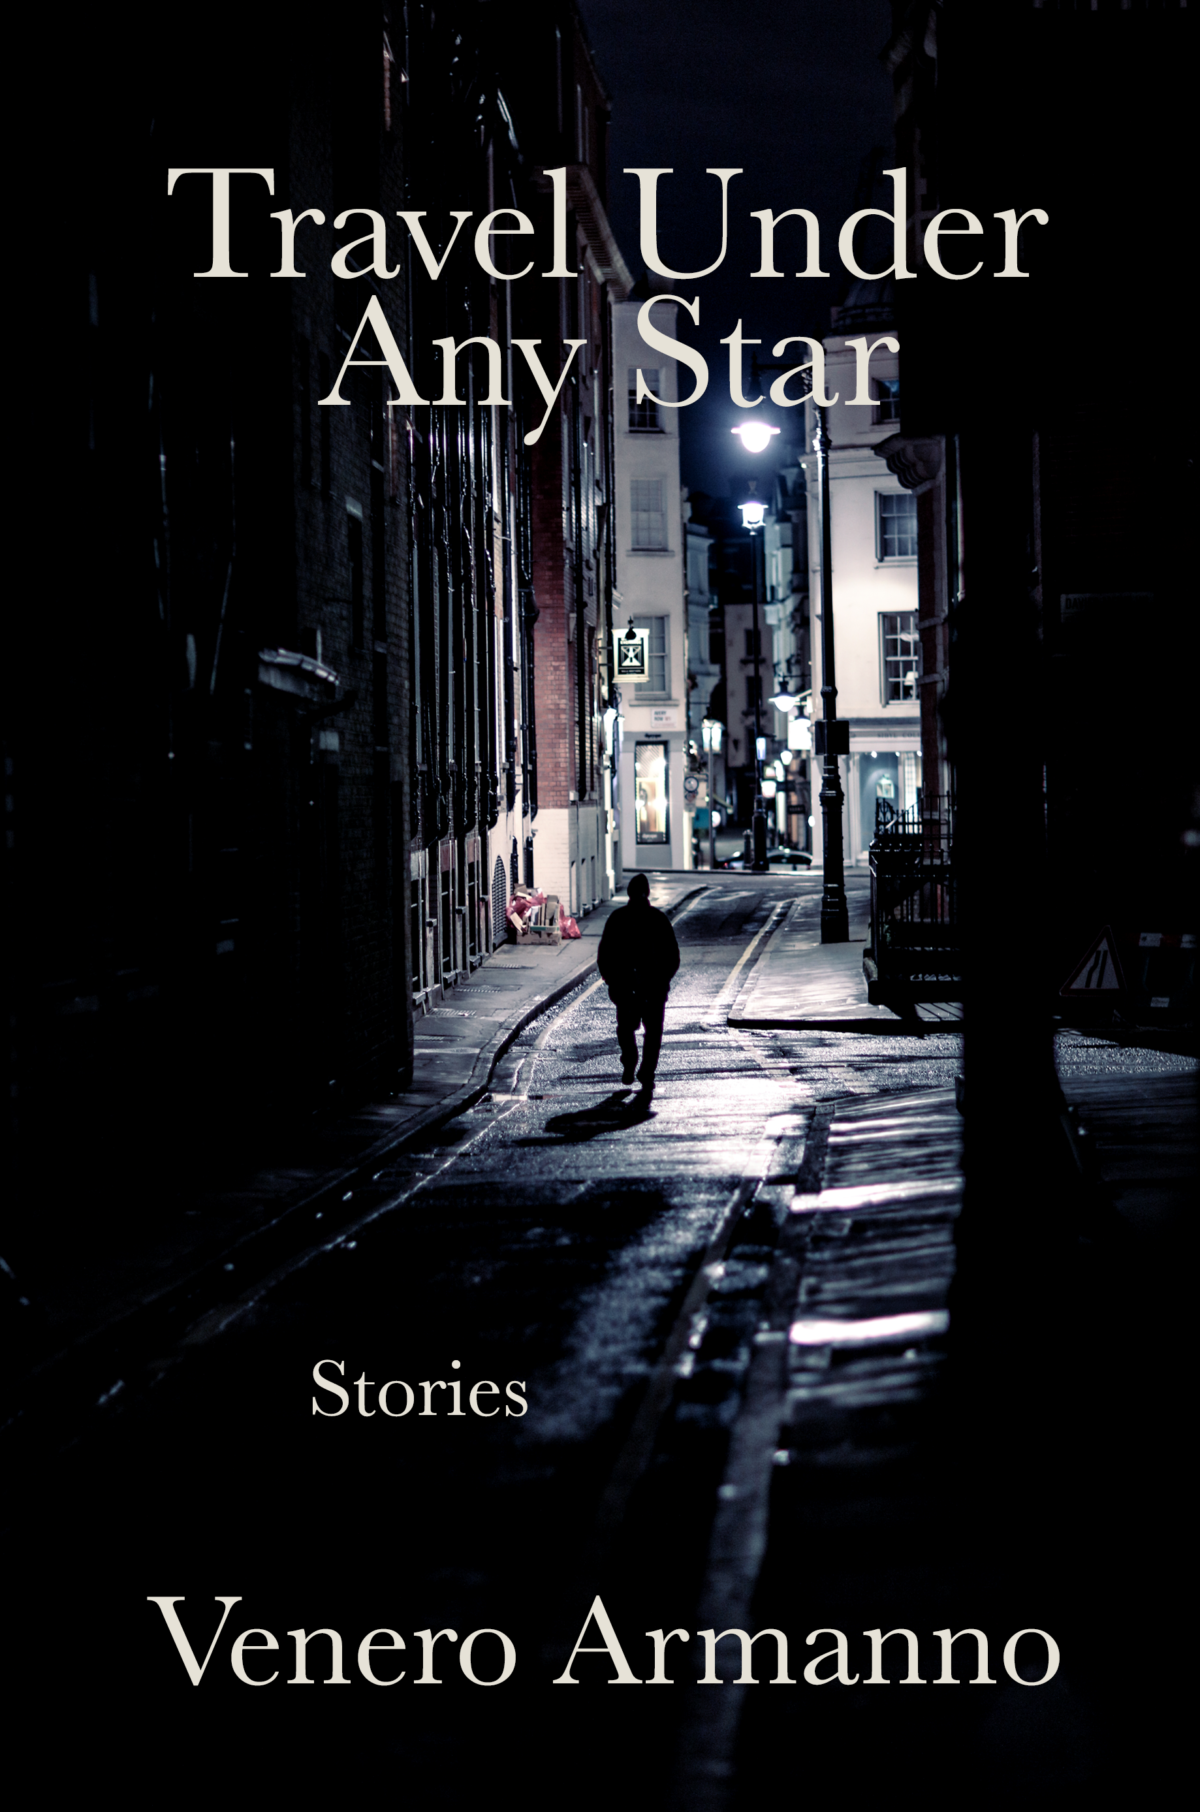 Venero Armanno: Travel Under Any Star | Collected Stories (2016)